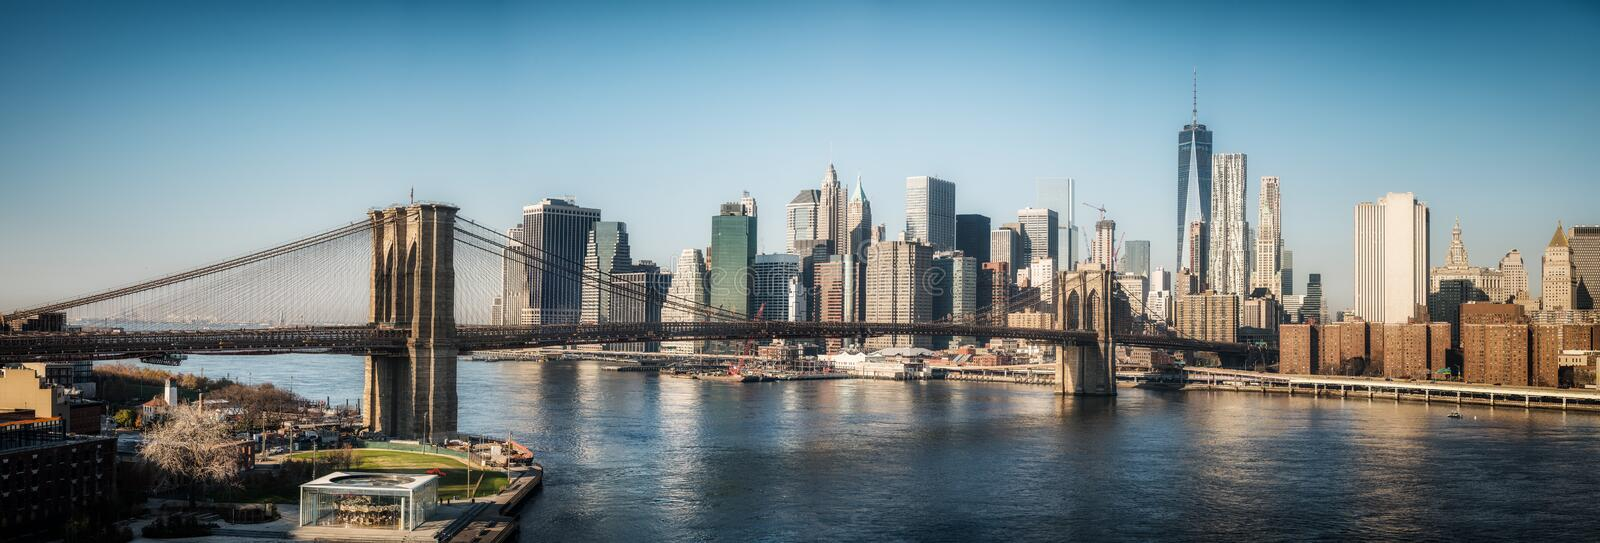 Brooklyn bridge and Manhattan at sunny day royalty free stock images